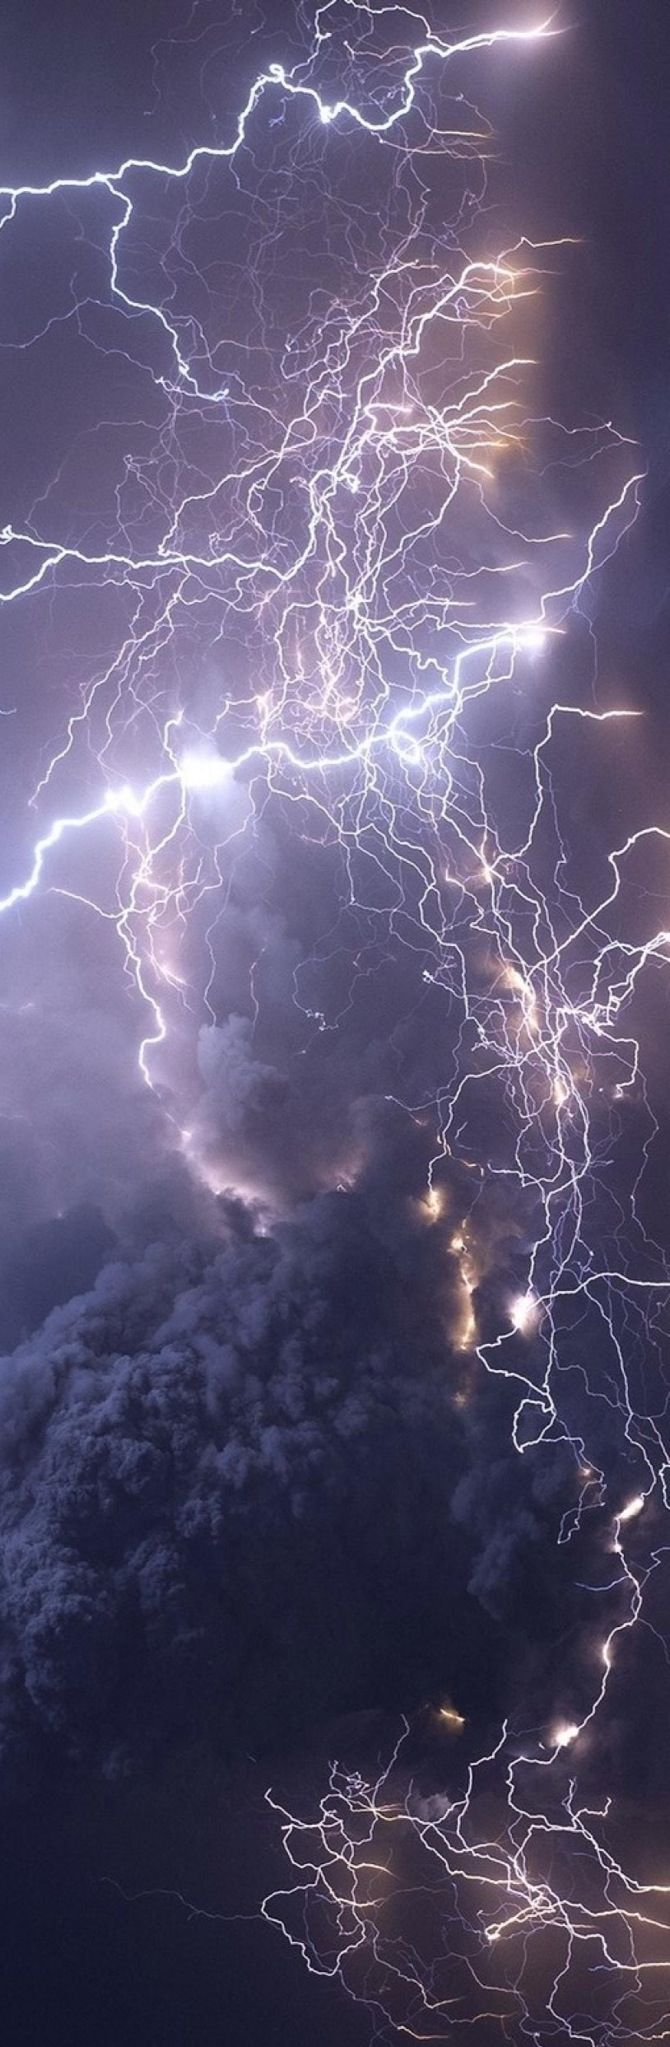 Volcanic ash cloud lightning created by static electricity as the particles rub and tumble together.